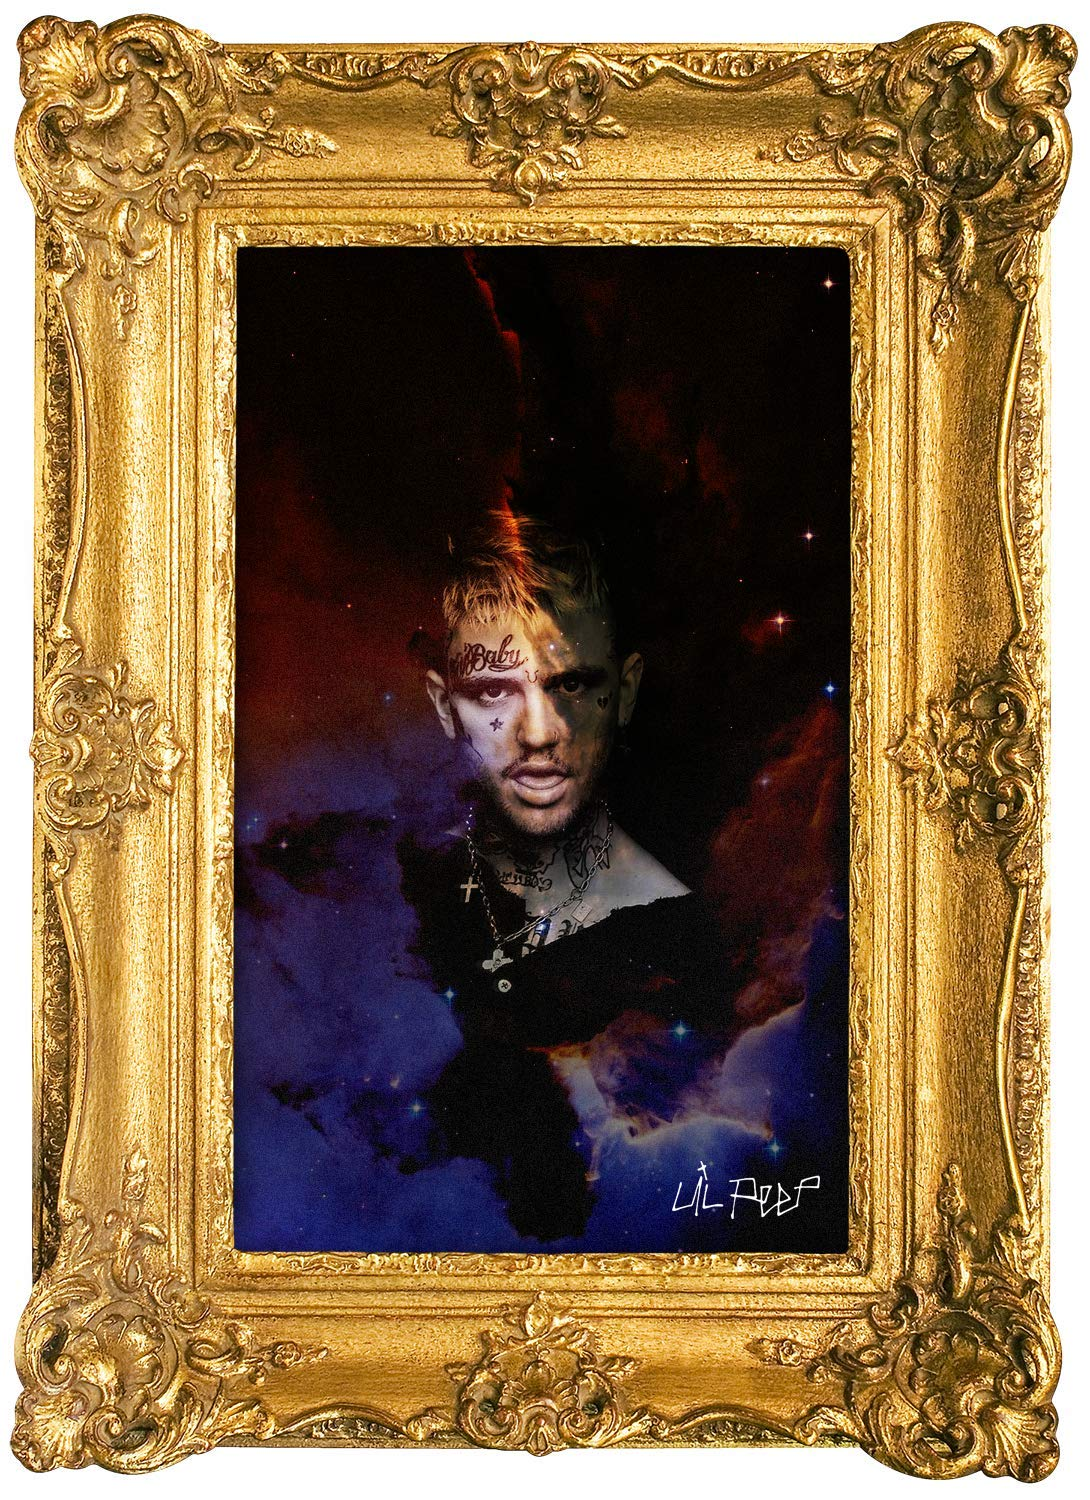 CanvasWallCraft poster compatible with Free shipping anywhere in the nation merc Arlington Mall Lil Peep -